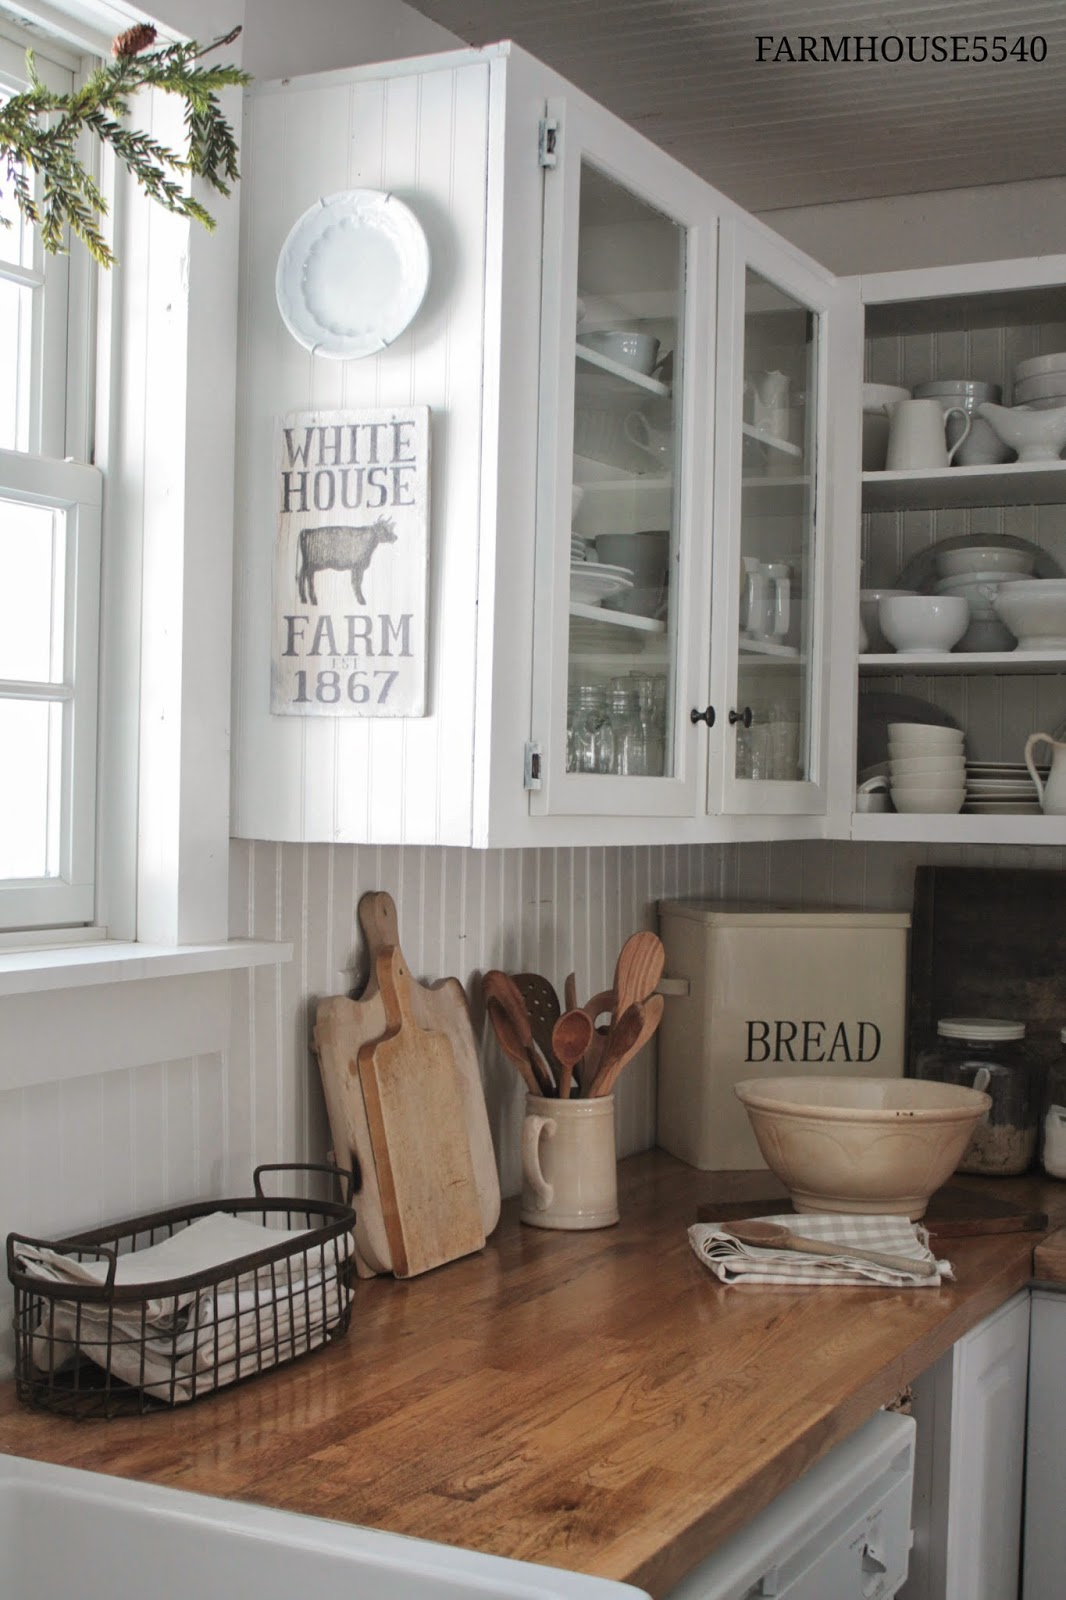 Check out these 7 Ideas for a Farmhouse Inspired Kitchen on natural christmas ideas, natural kitchen cabinets, natural business ideas, natural nursery ideas, natural kitchen inspiration, natural kitchen tools, natural living ideas, natural bedroom ideas, natural jewelry ideas, natural breakfast ideas, natural kitchen backsplash, natural gardening ideas, natural plumbing ideas, natural recipes, natural cleaning ideas, natural kitchen decorating, natural home ideas, natural landscape ideas, natural beauty ideas, natural before and after,